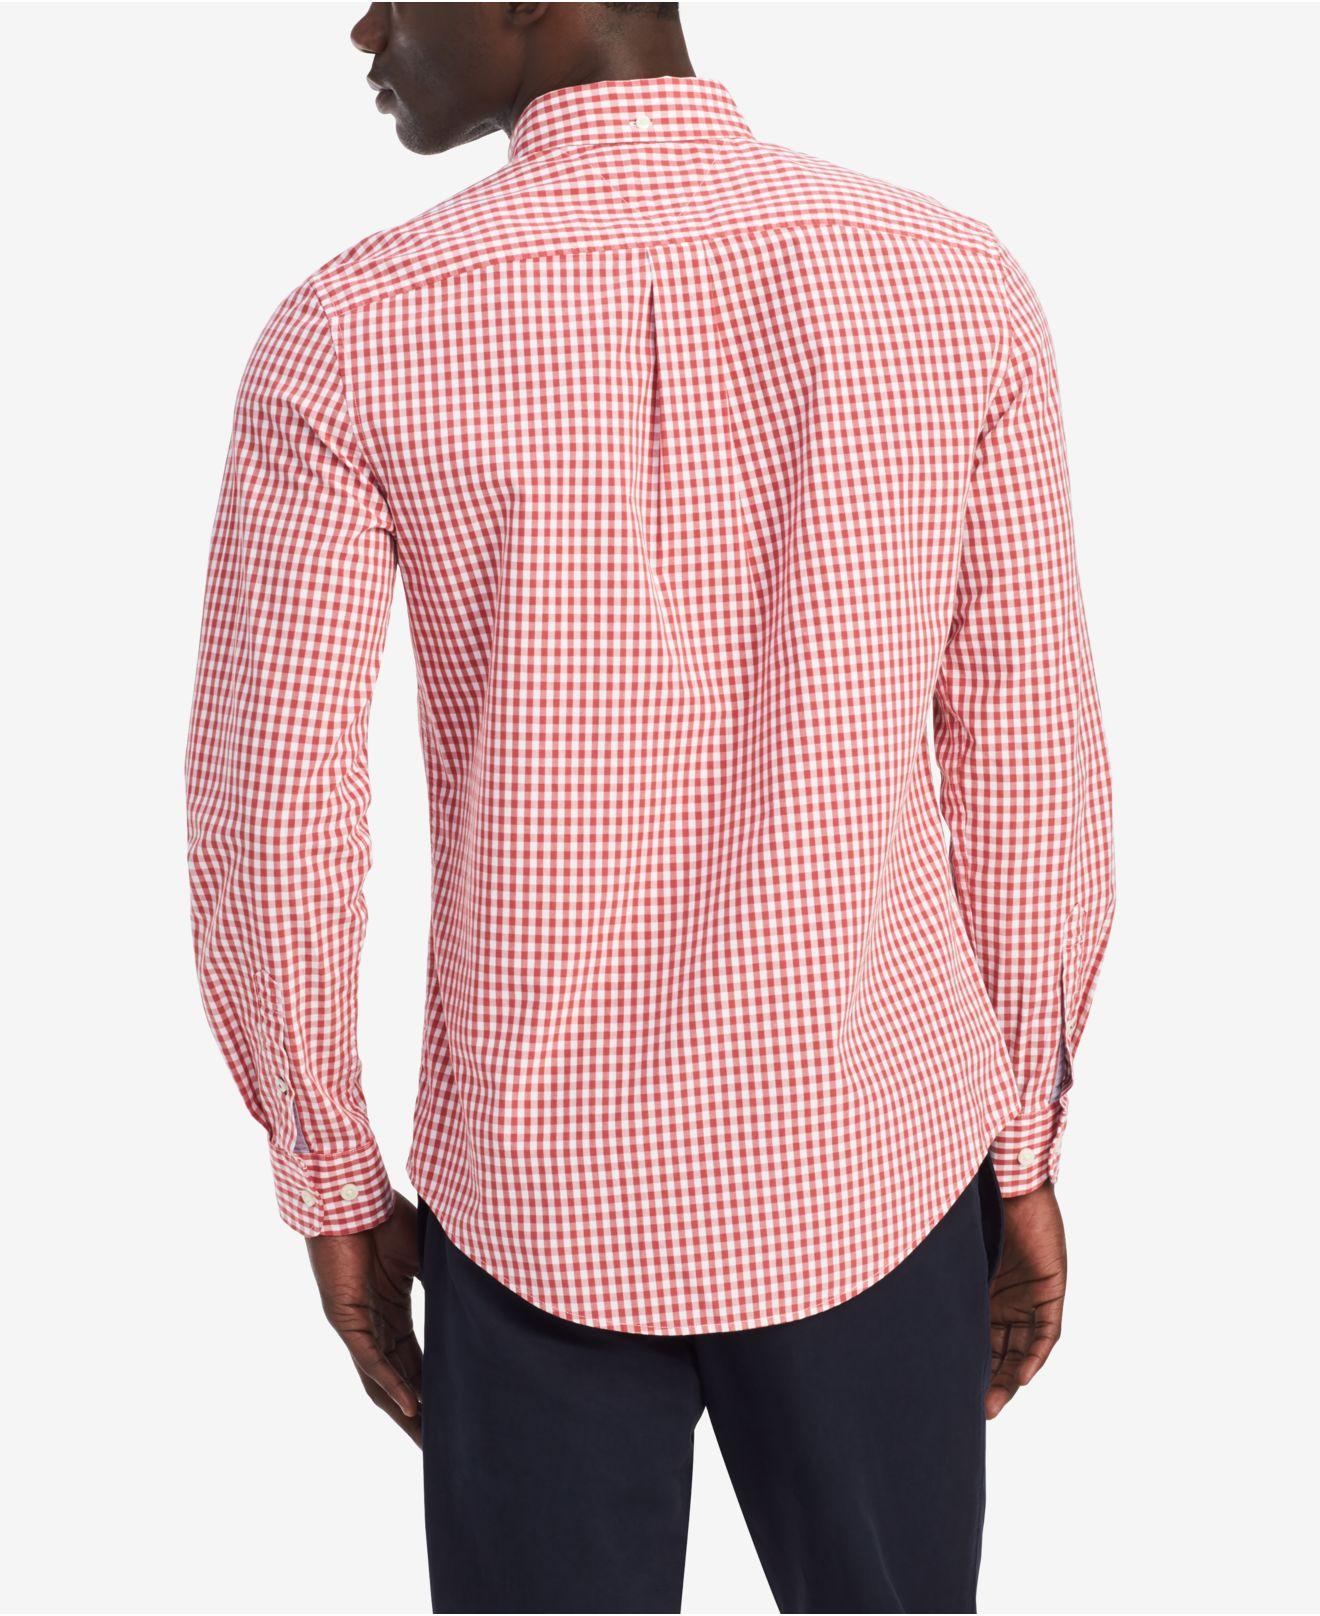 5f570e9ad Lyst - Tommy Hilfiger Classic-fit Twain Gingham Shirt, Created For Macy's  in Red for Men